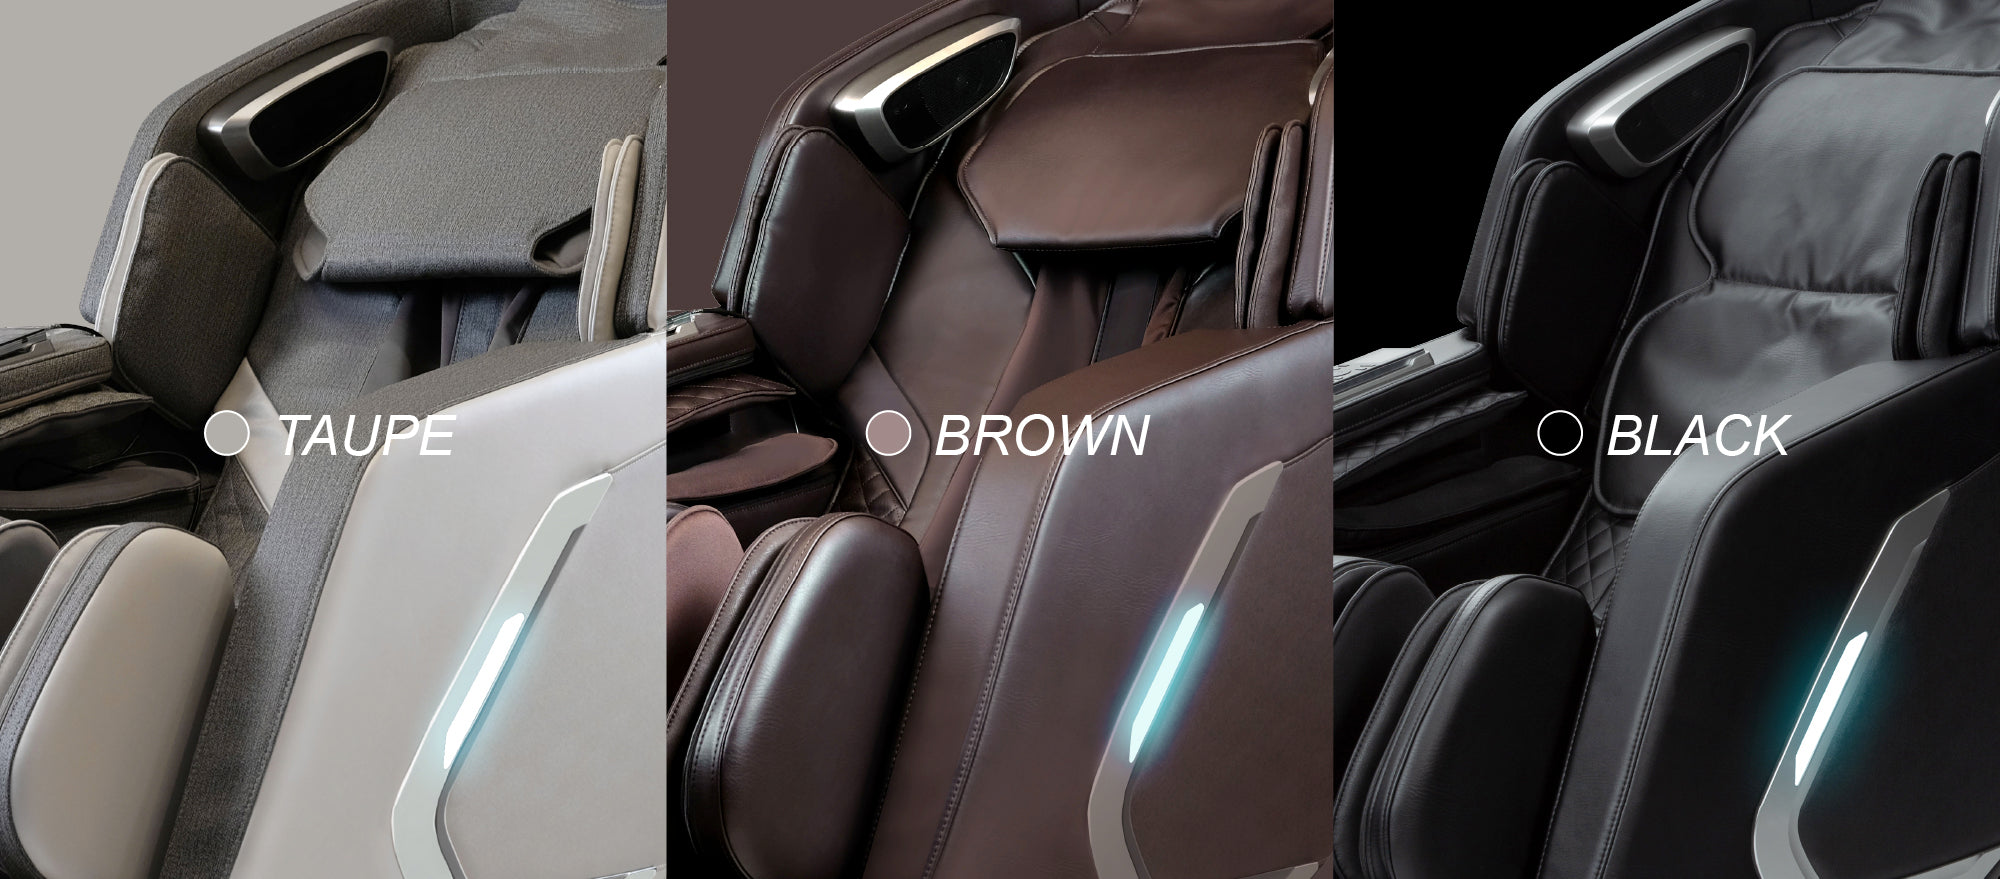 Color: Black, Brown, Taupe